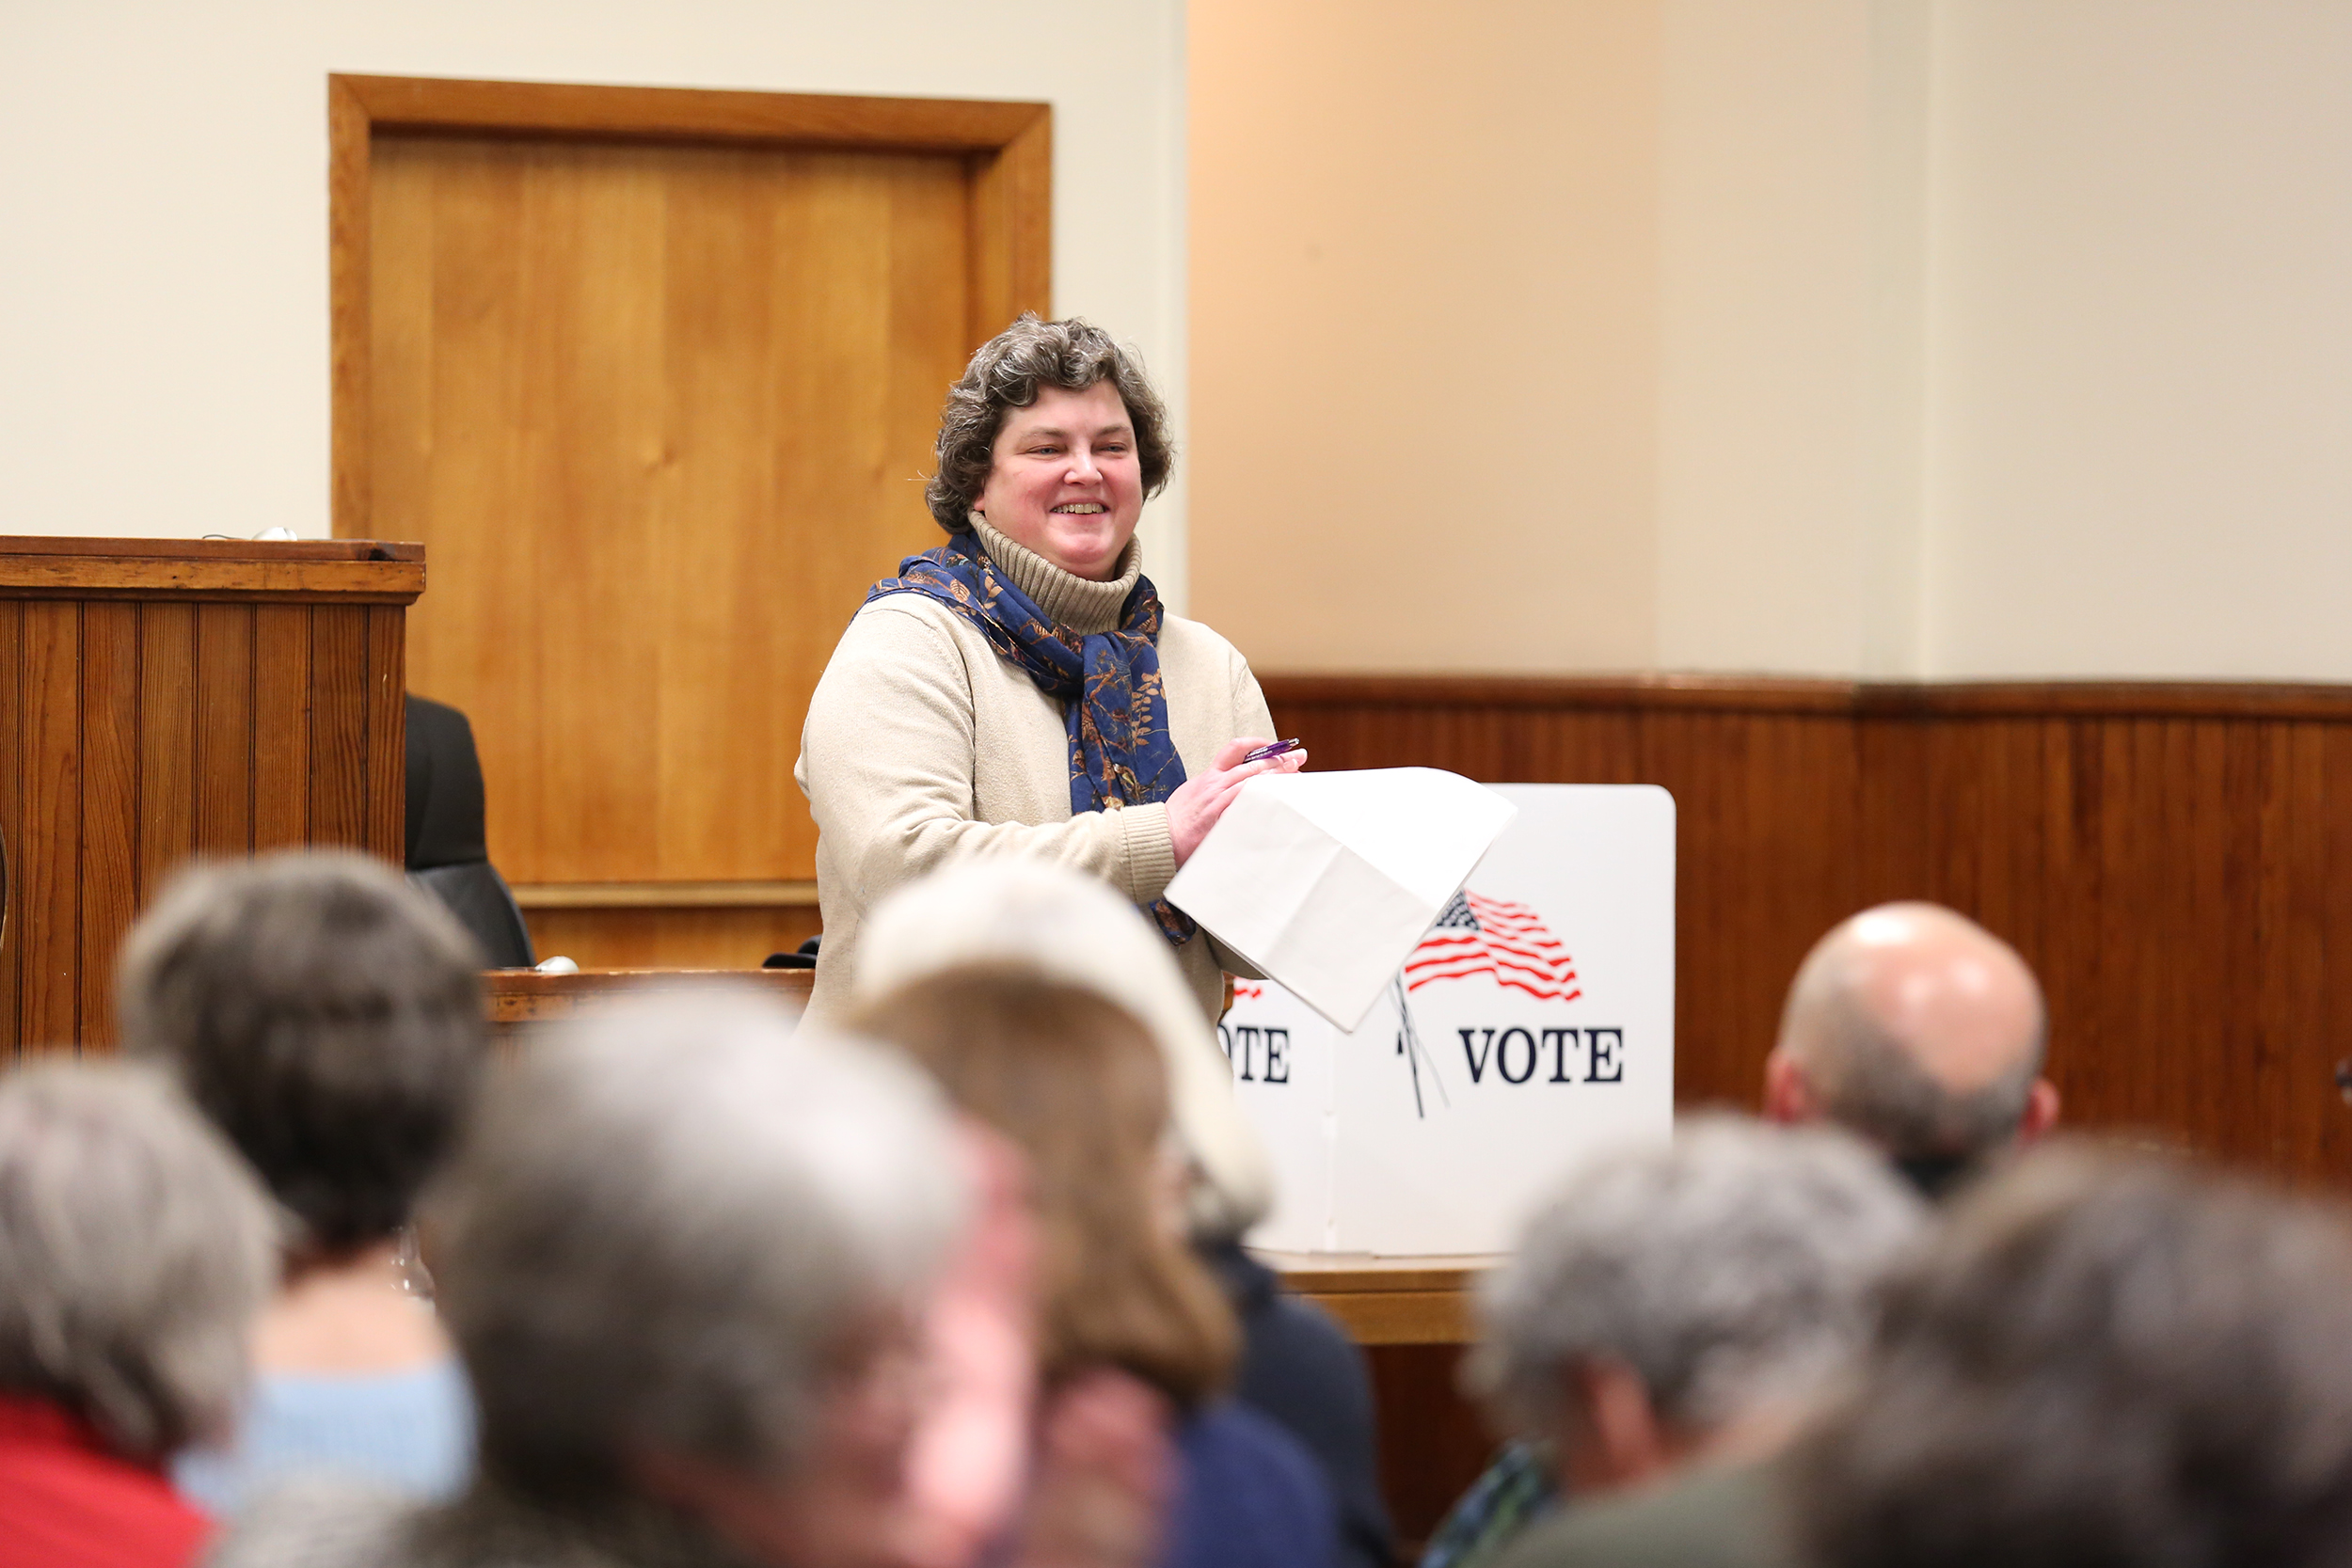 Livingston County Democratic Committee Chair Judith Hunter presided over the caucus of village Democrats on Monday Jan. 29 (pictured above). The Democratic and Republican caucuses each selected candidates for the positions of Mayor, Village Justice and Village Trustees. (Annalee Bannison/Photo Editor)